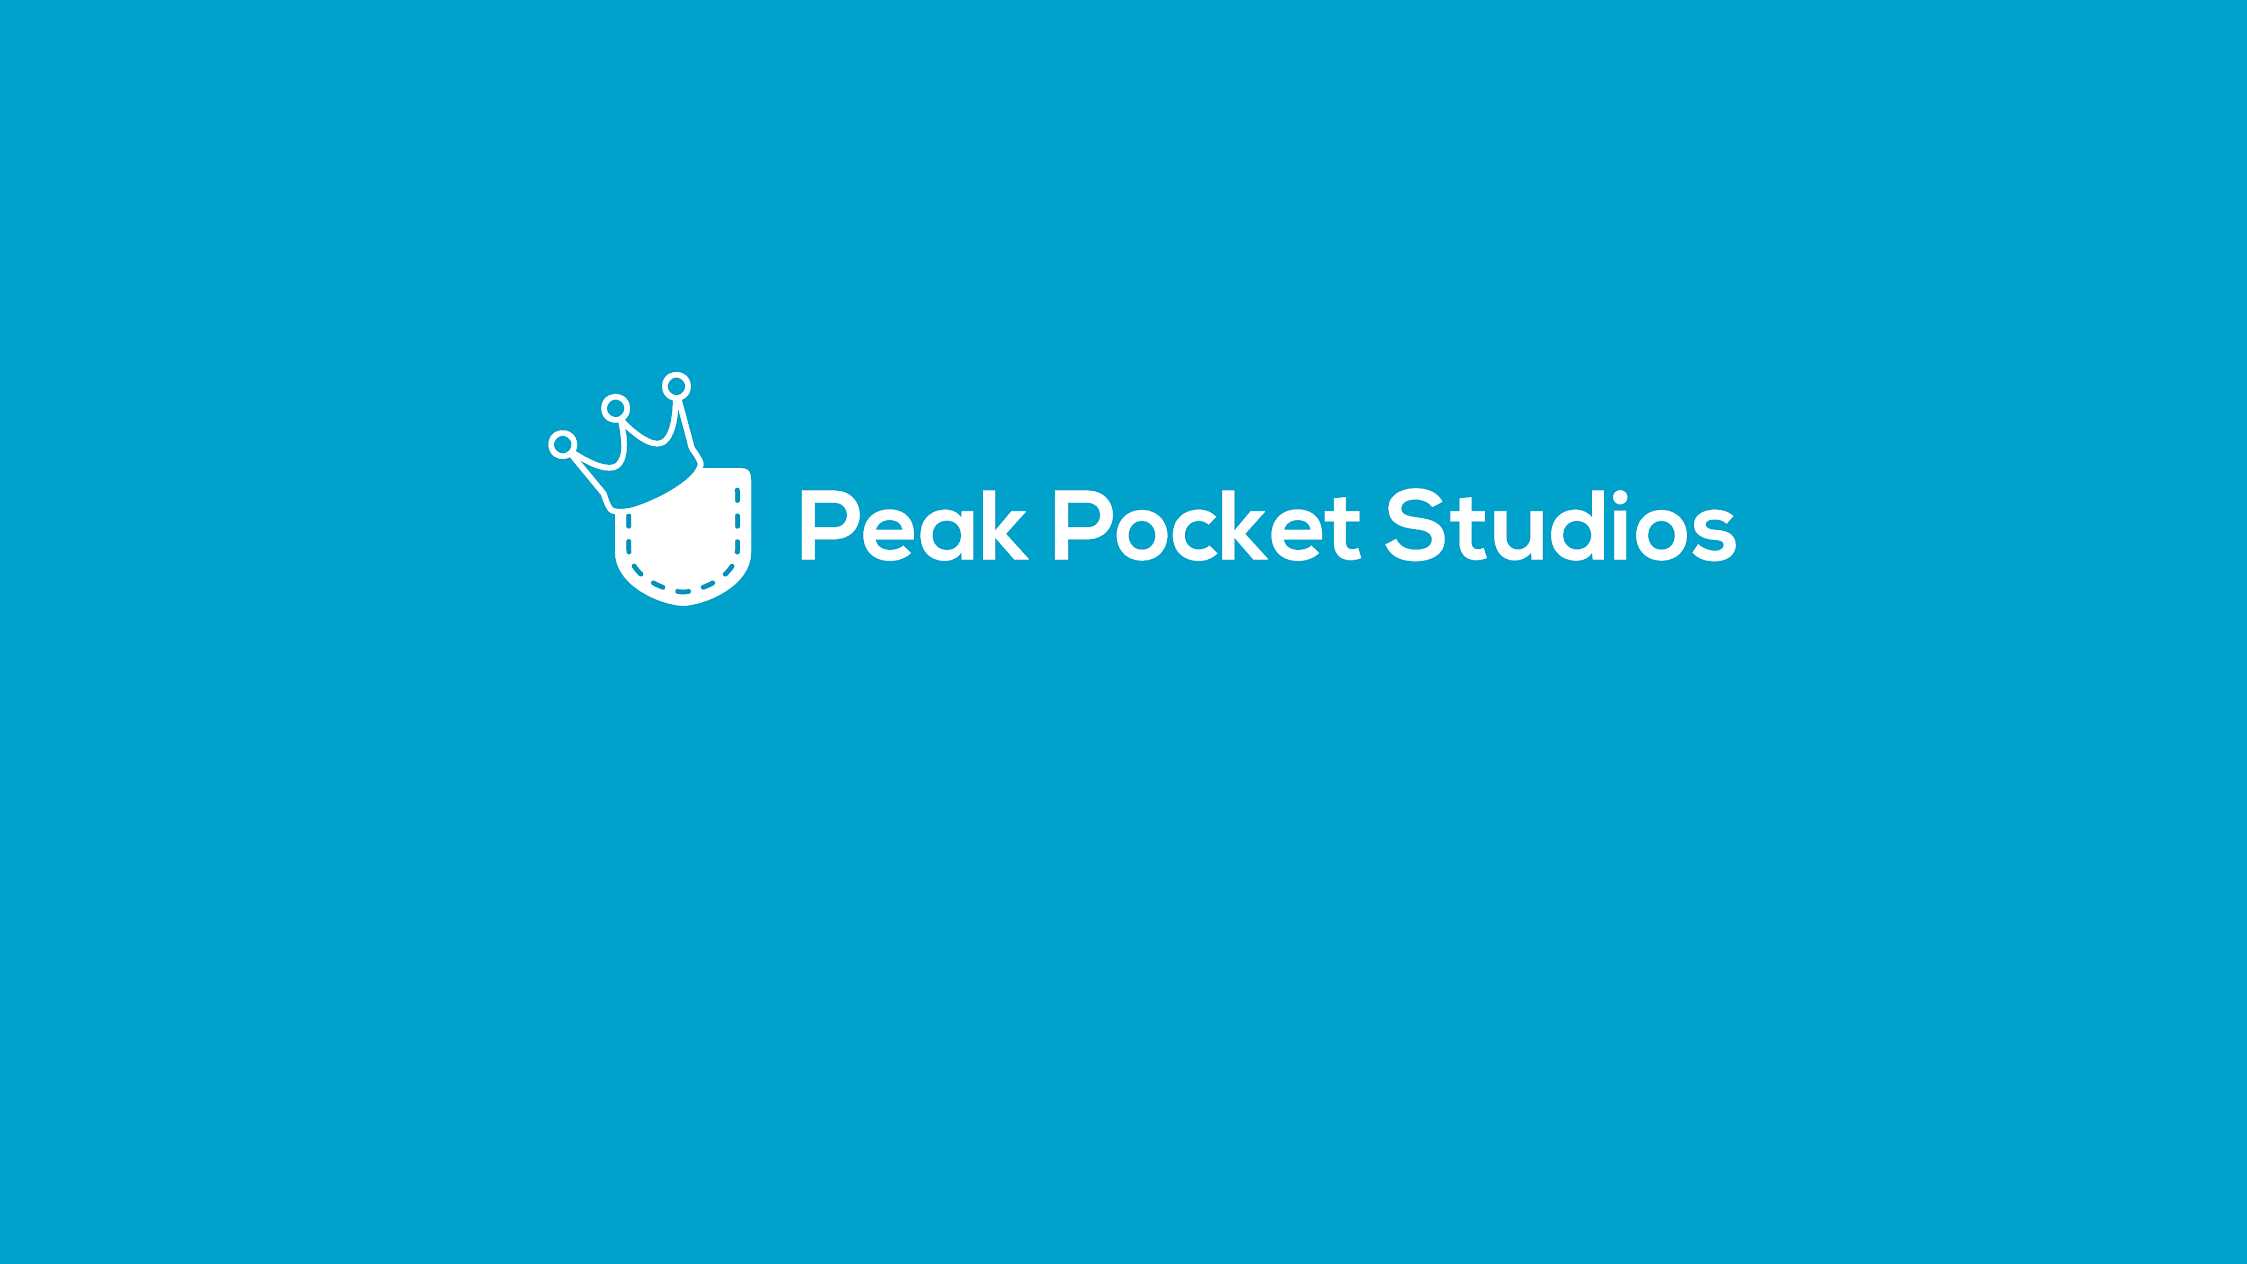 Peak Pocket Studios